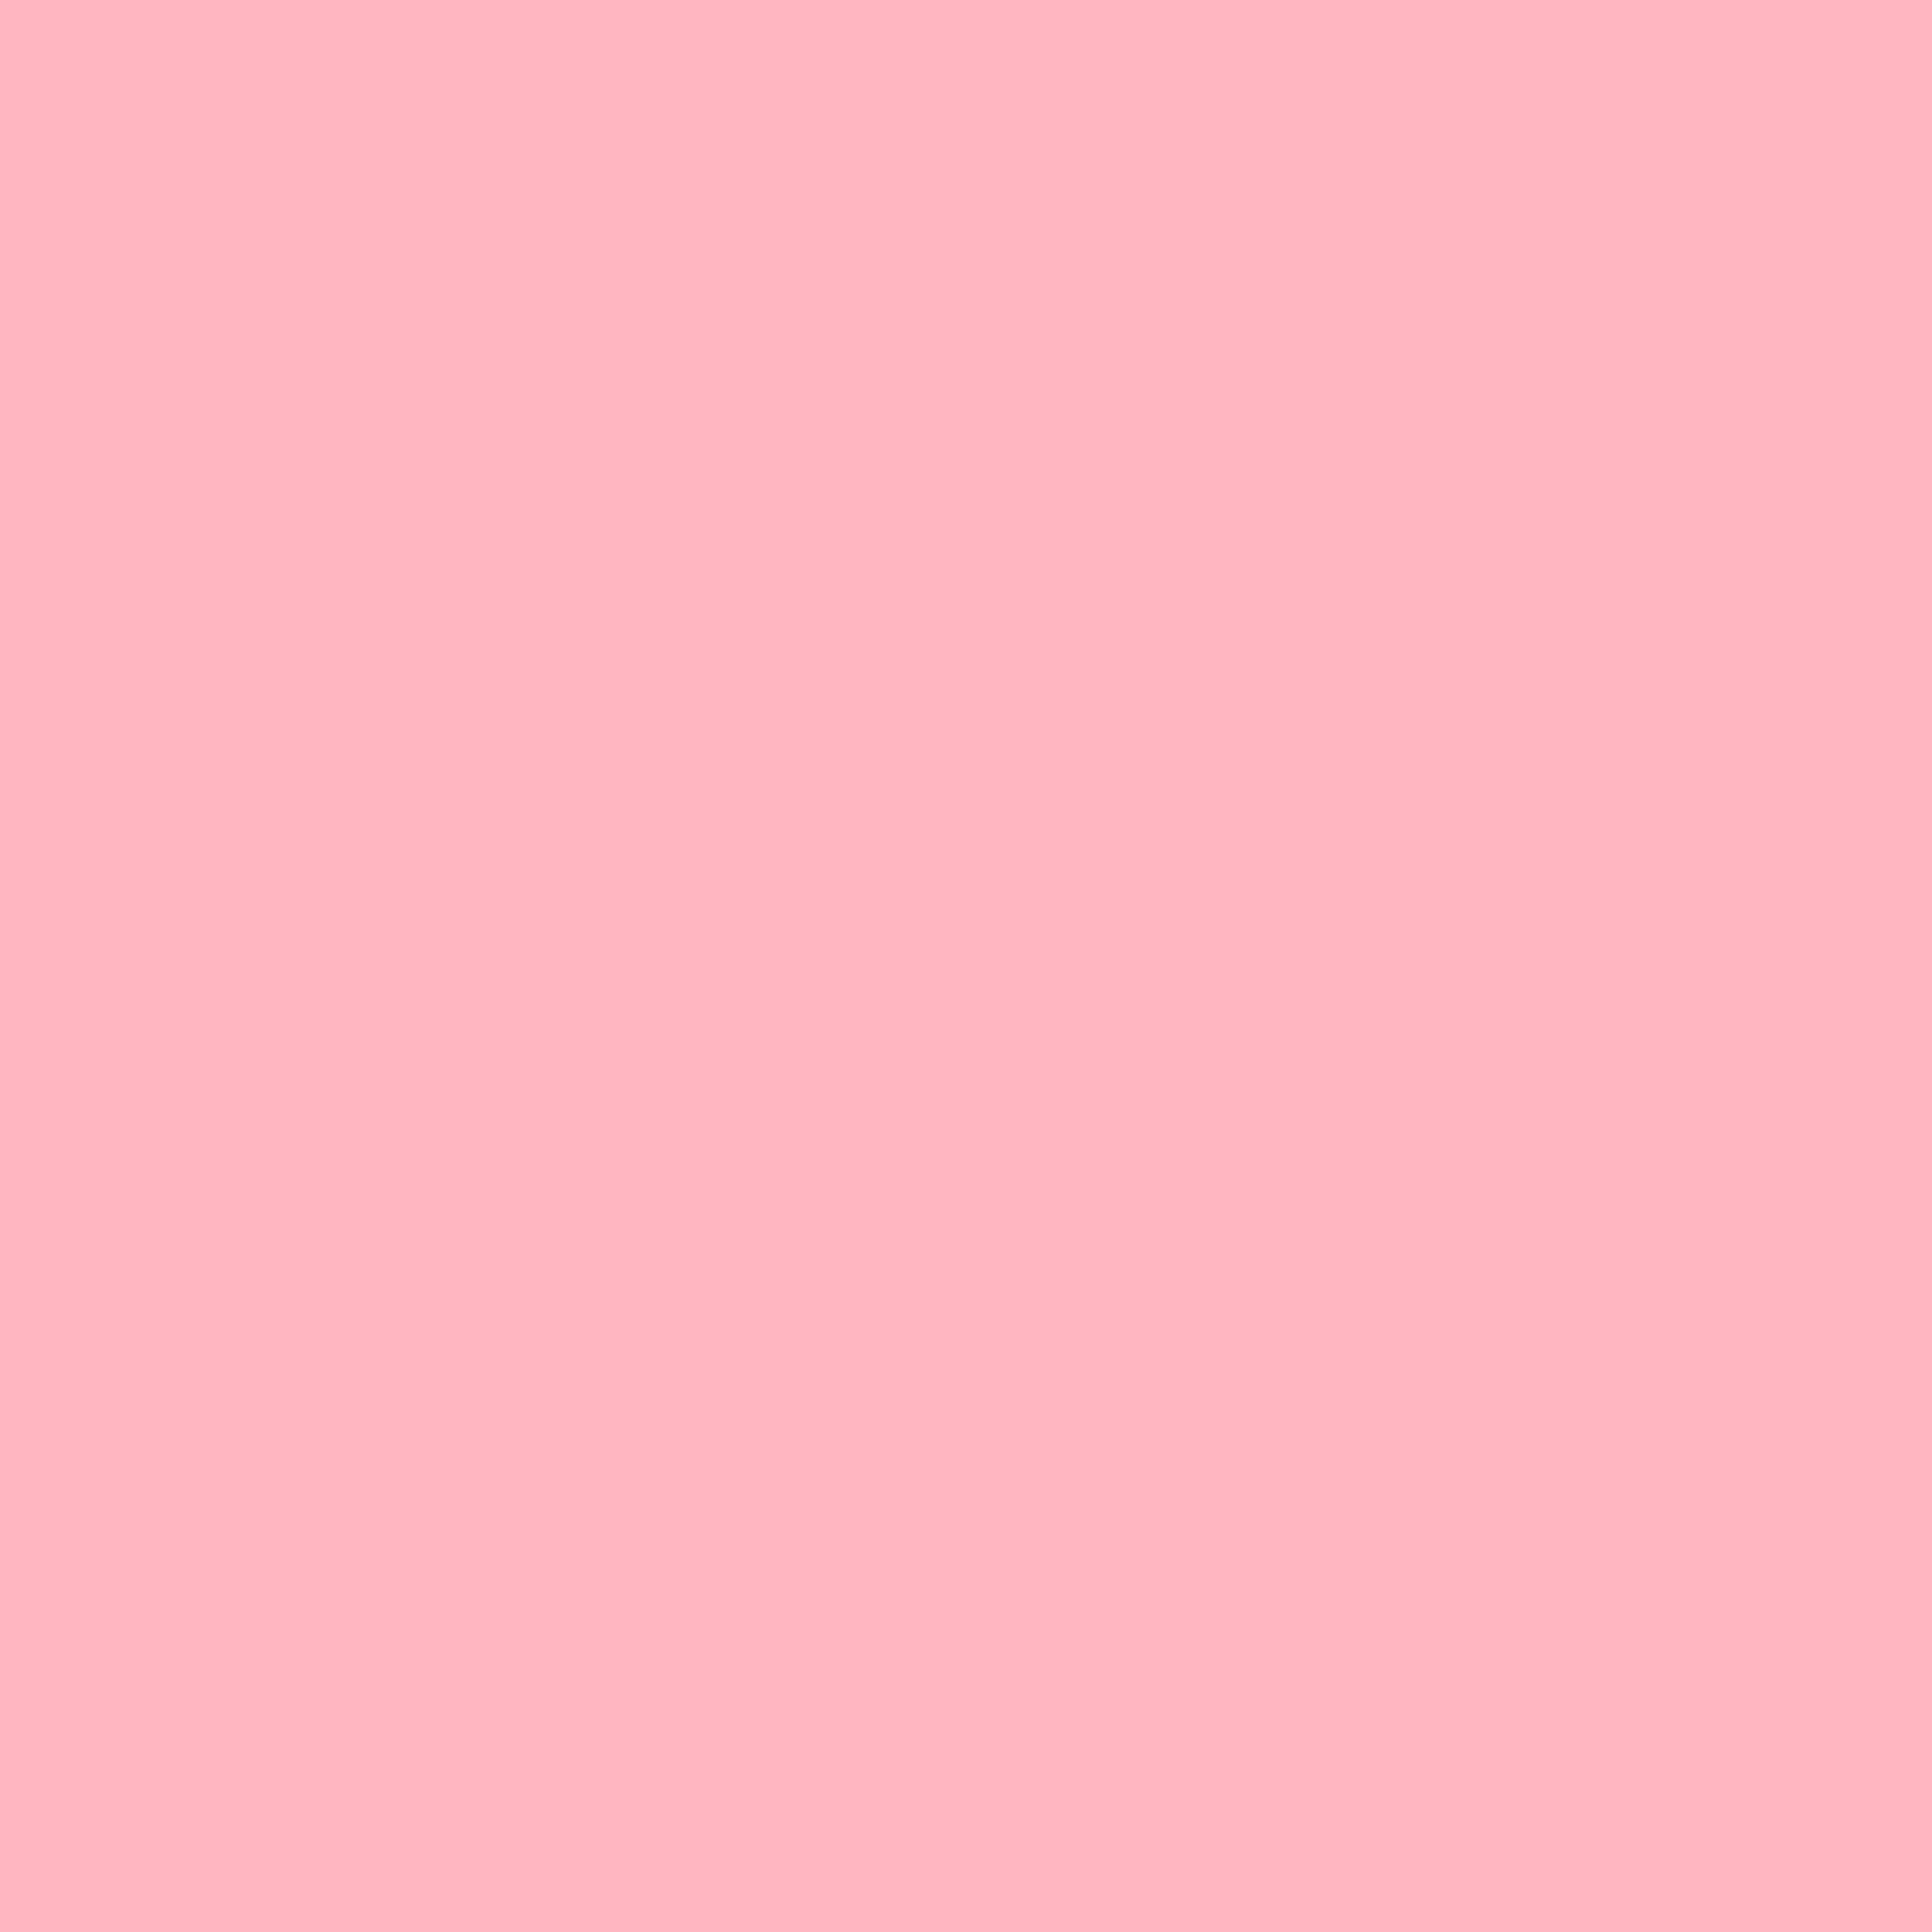 Bright pink backgrounds 41 images 1920x1080 bright pink and black vocaloid anime background voltagebd Image collections